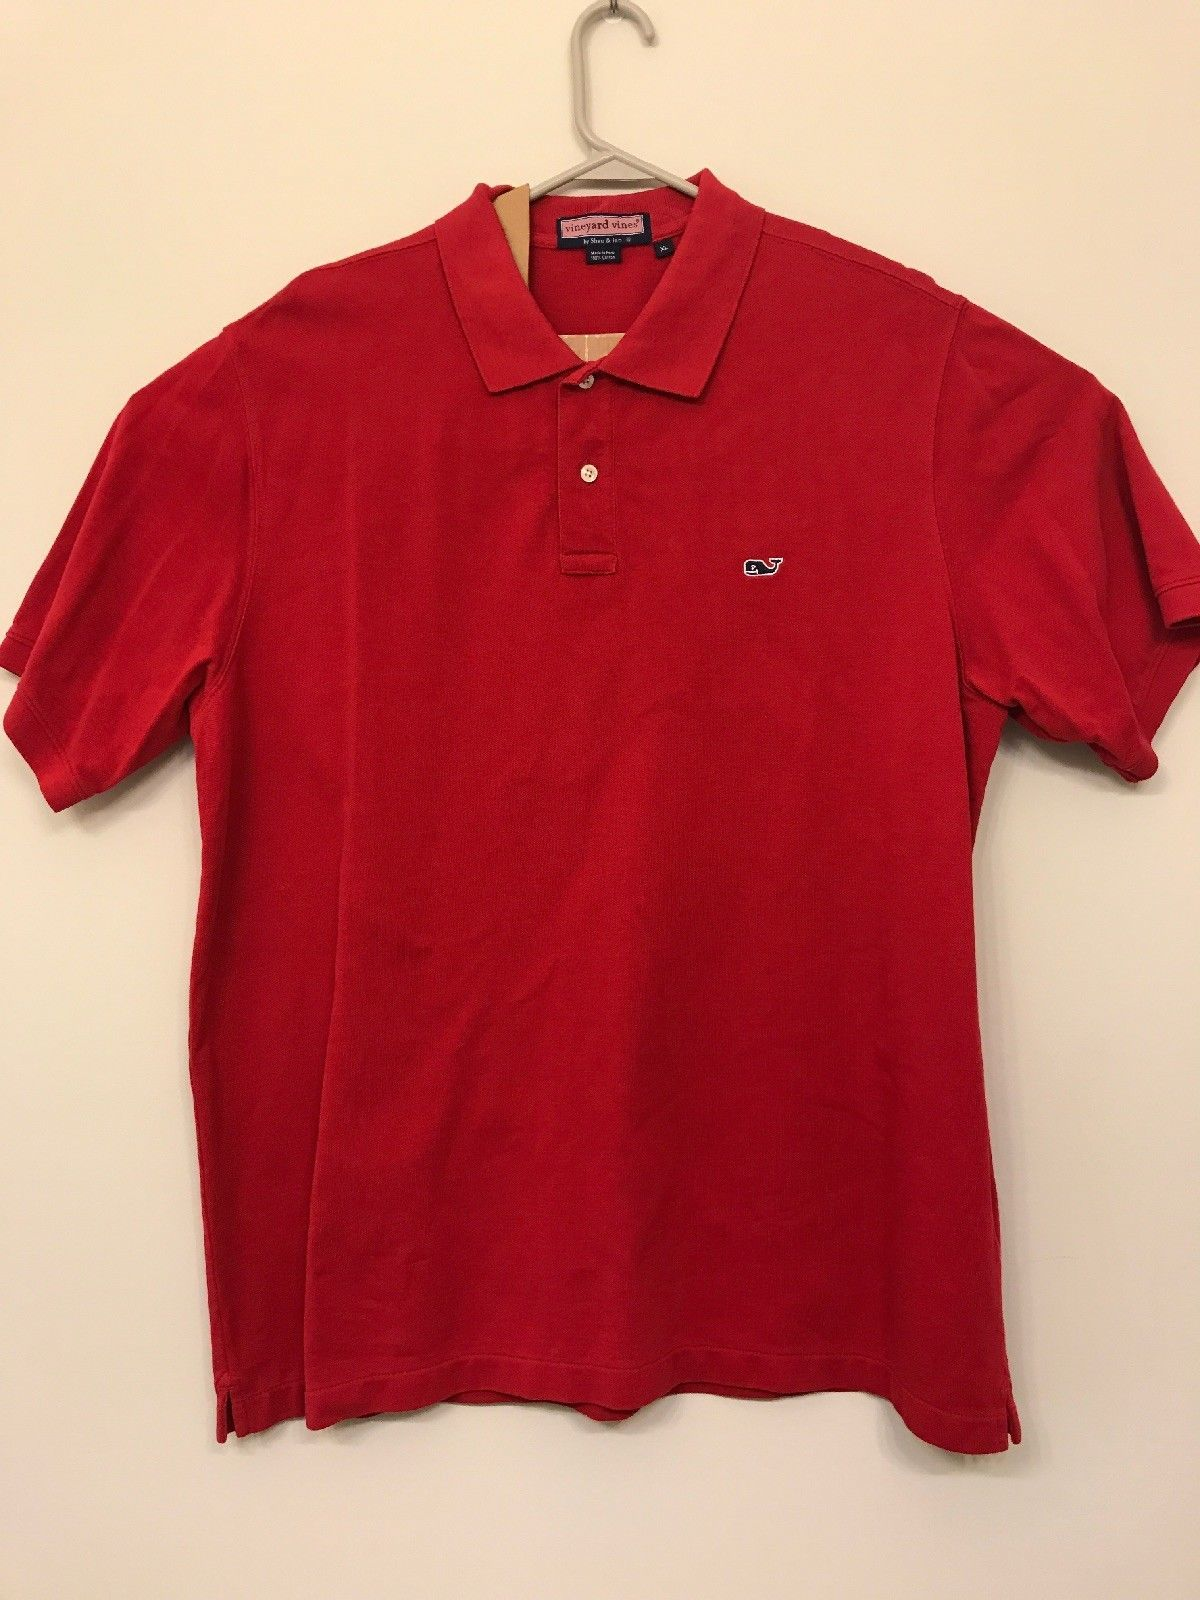 Primary image for Vineyard Vines Men's LARGE Red Short Sleeve Cotton Polo